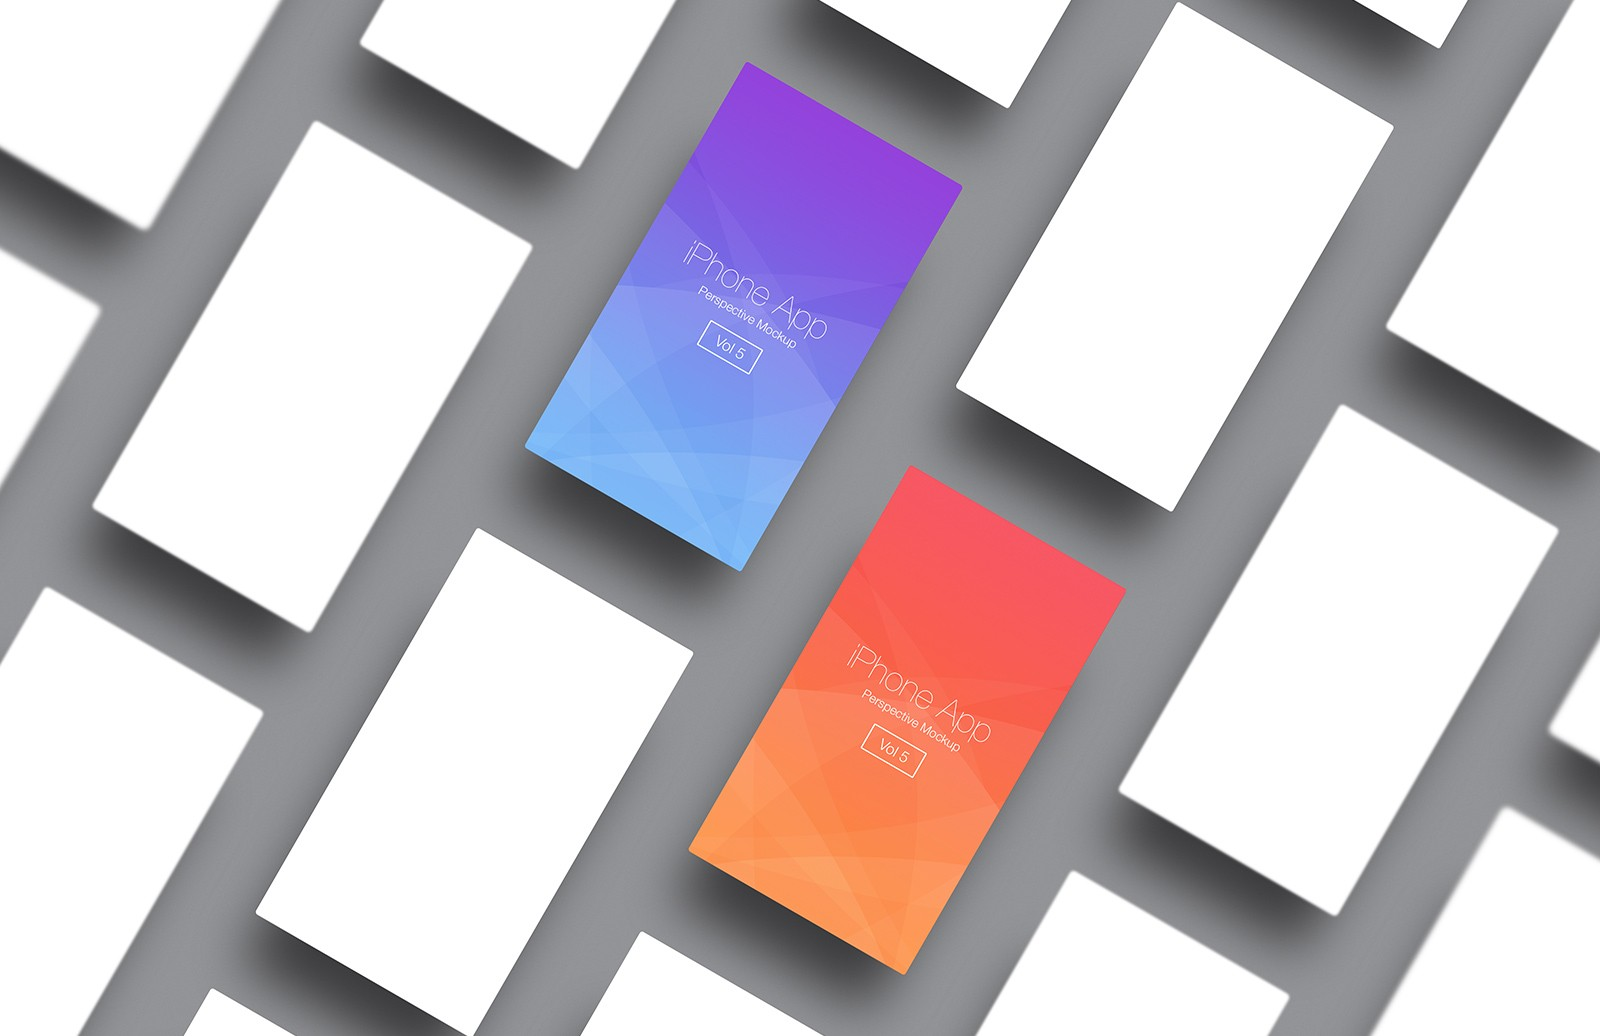 I Phone  App  Perspective  Mockup  Vol 5  Preview 1